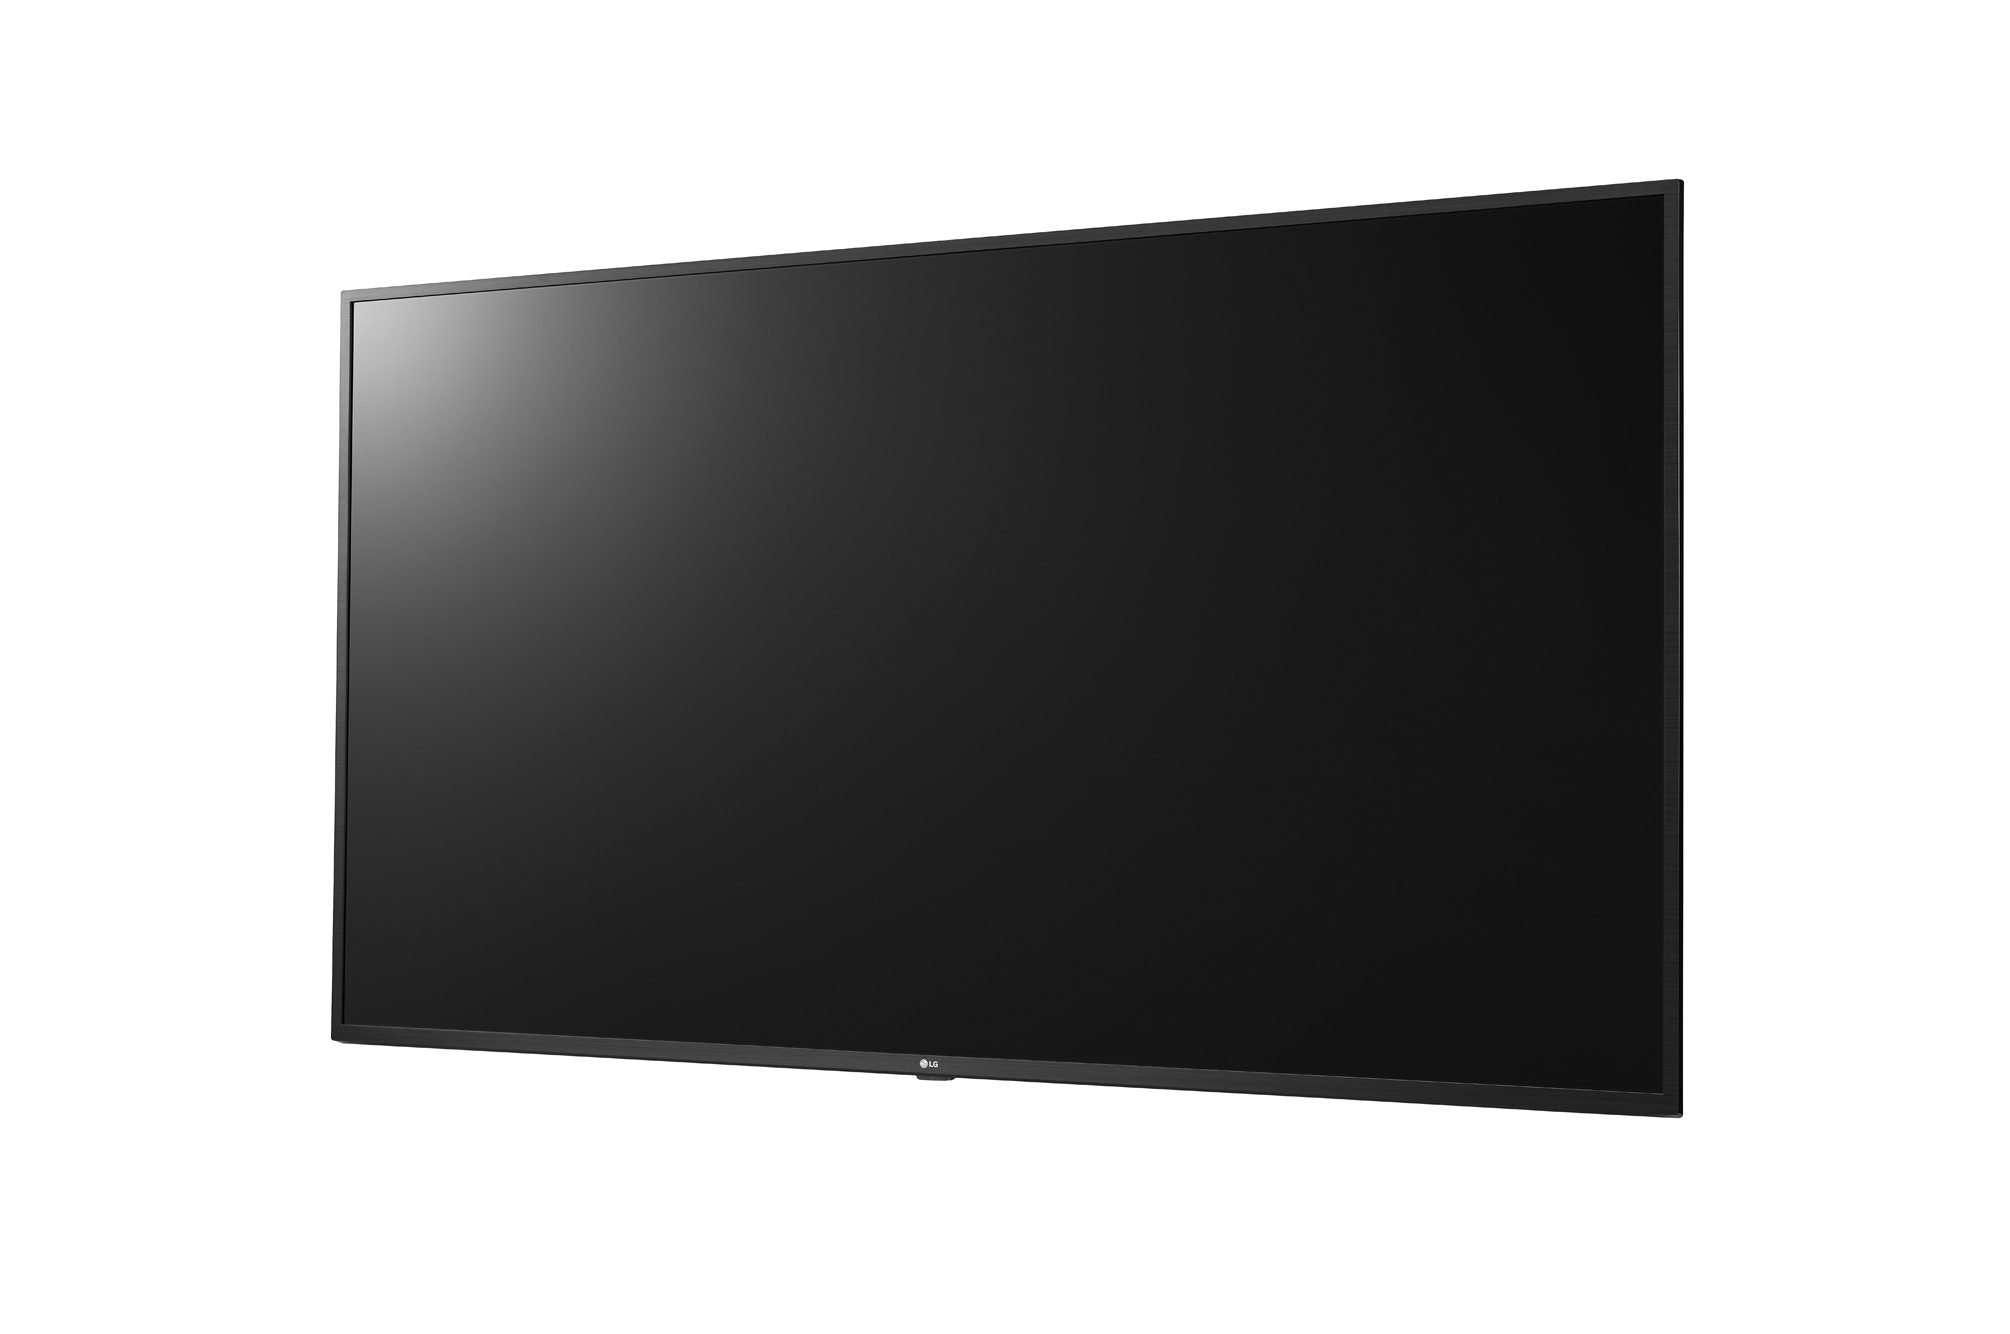 LG Smart TV Signage 55UT640S (EU) 3